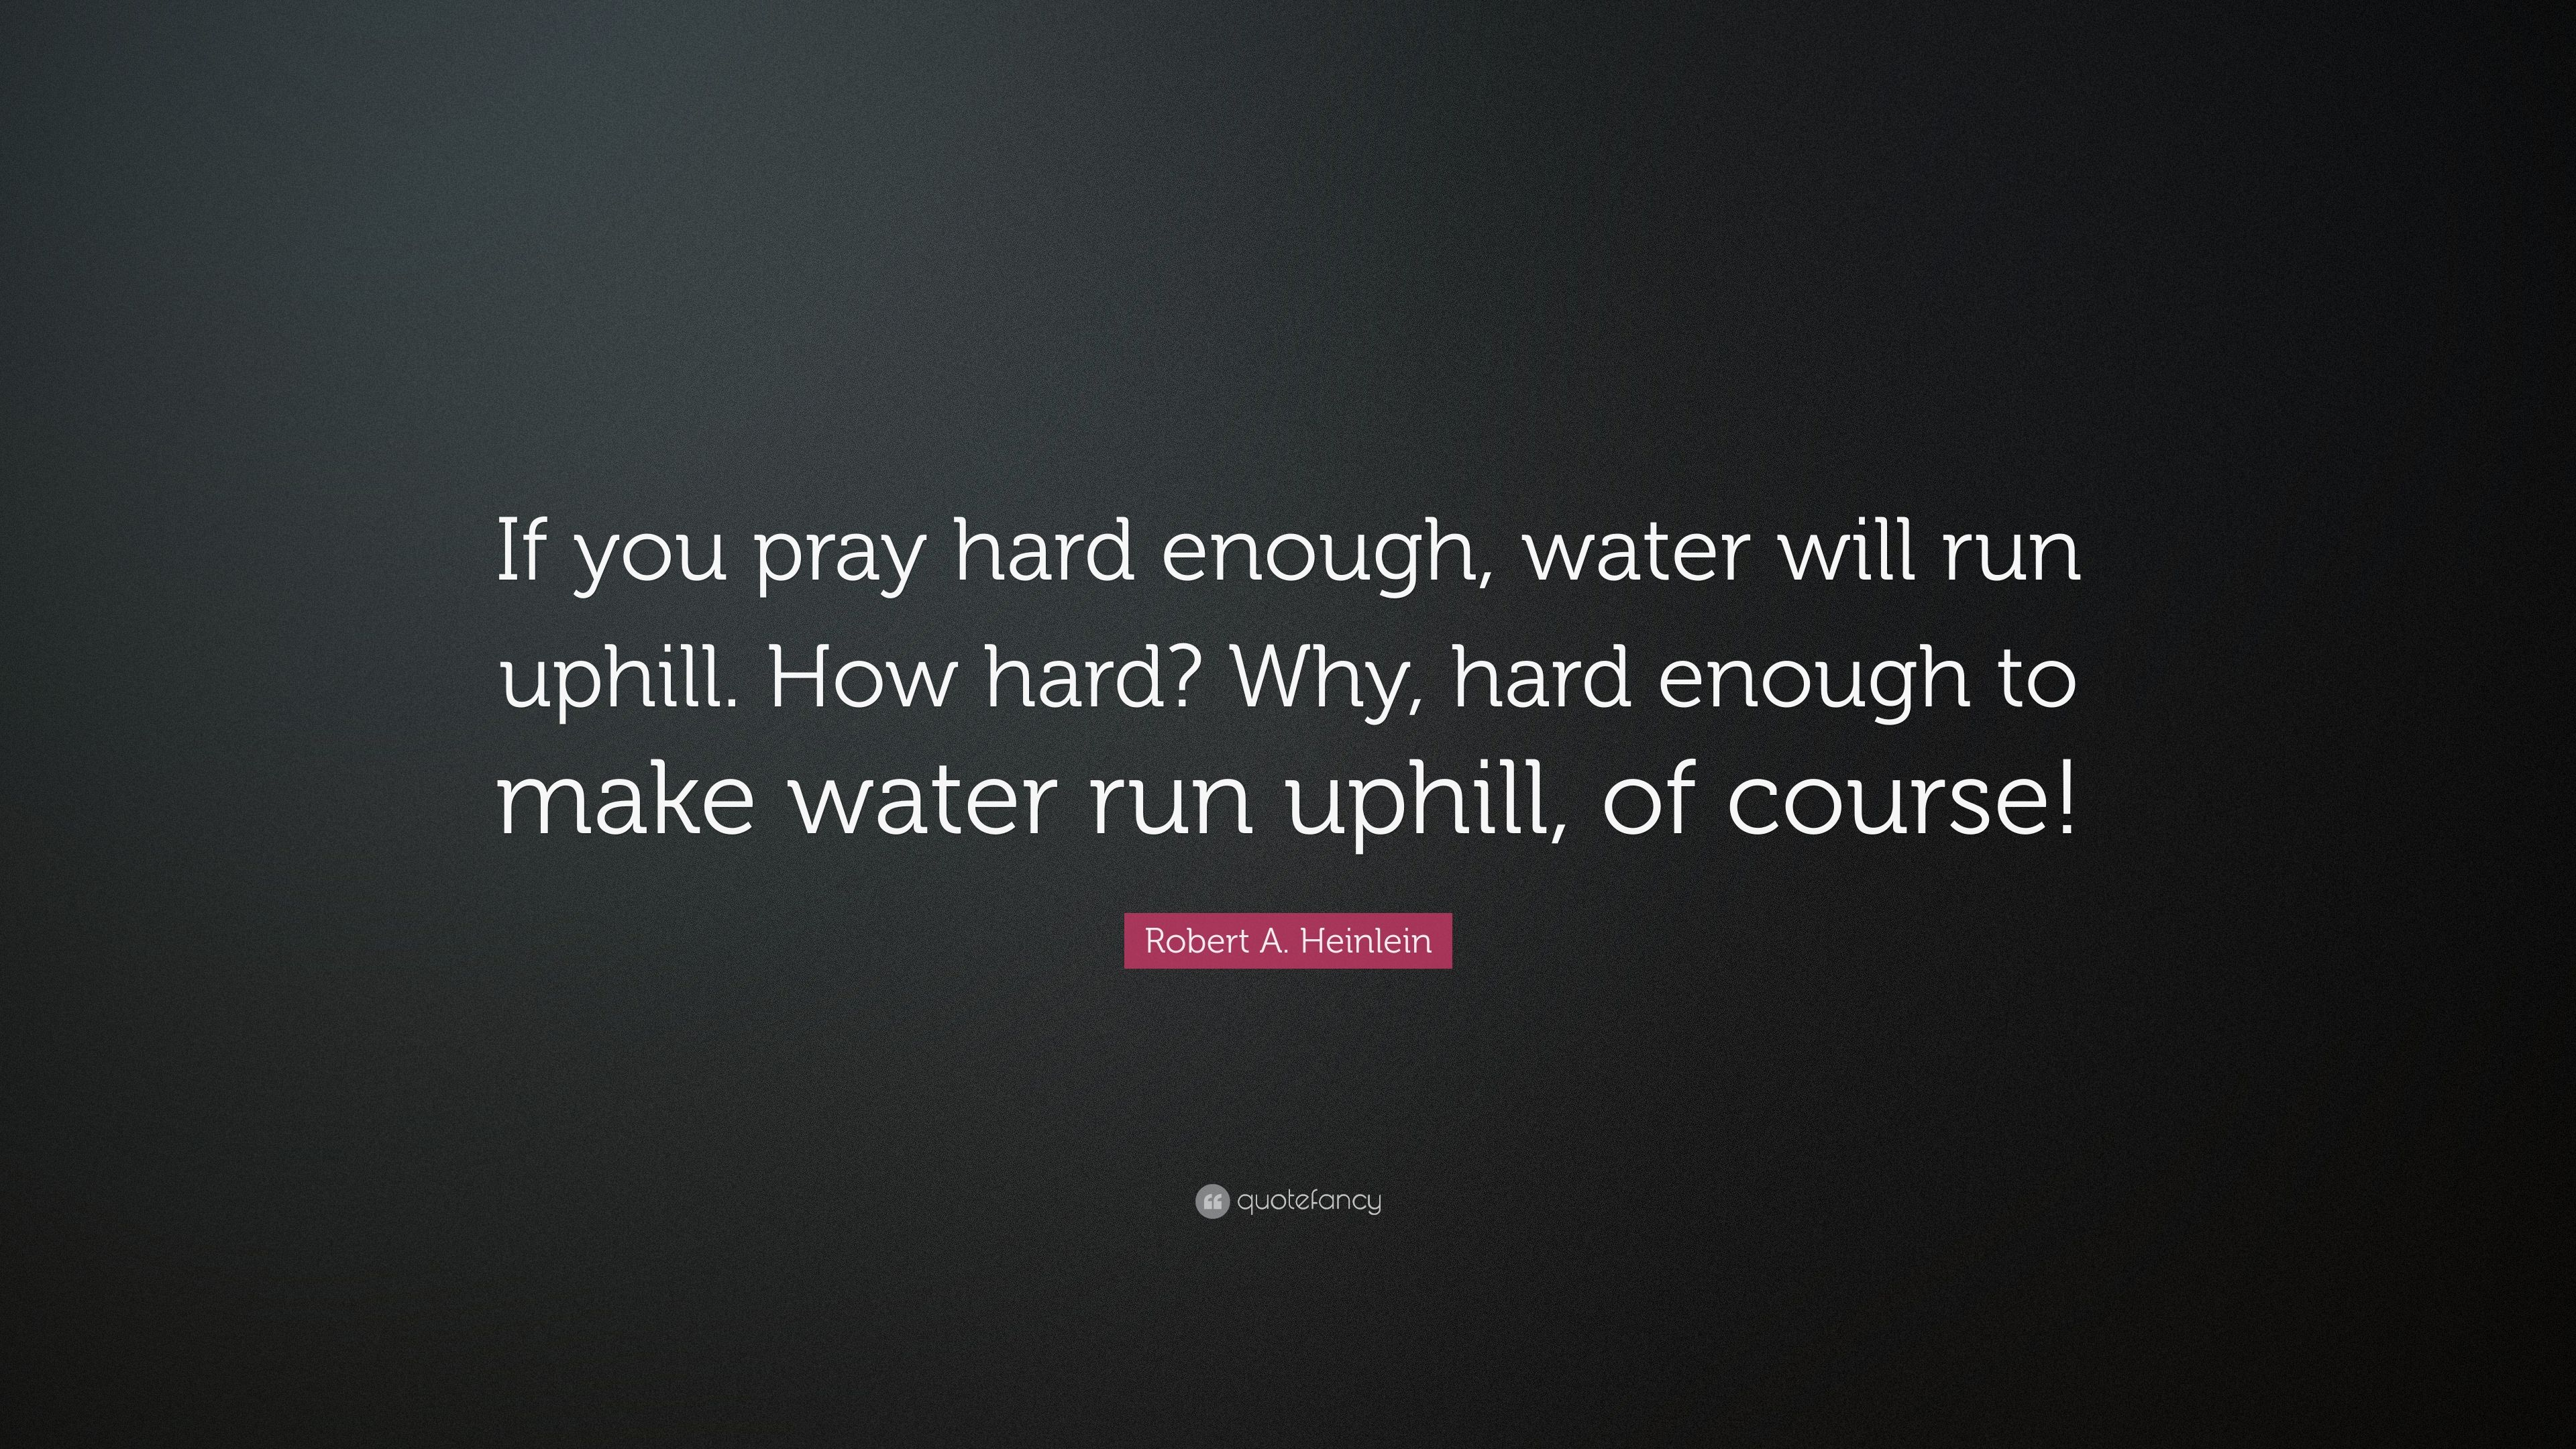 Robert A Heinlein Quote If You Pray Hard Enough Water Will Run